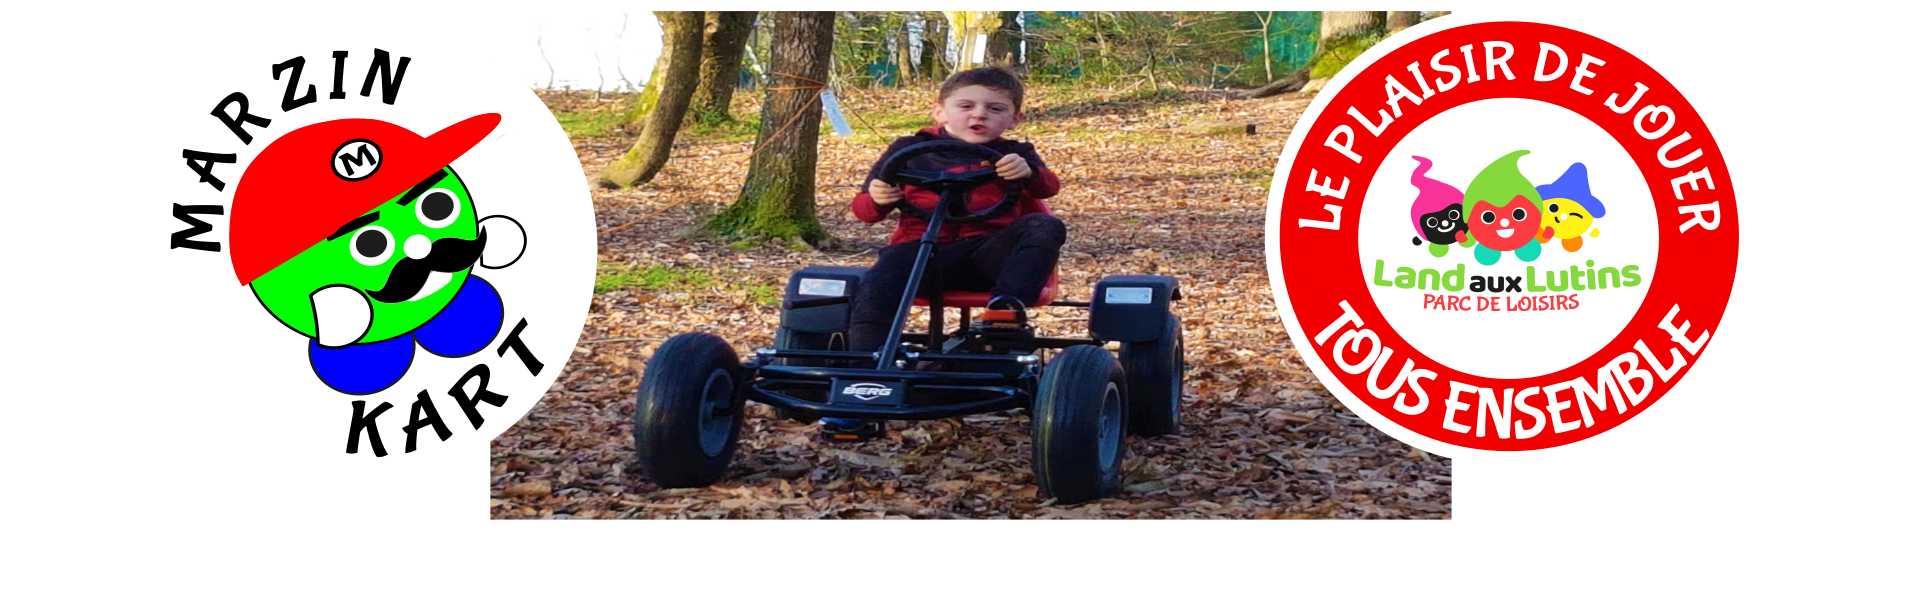 kart_a_pedale